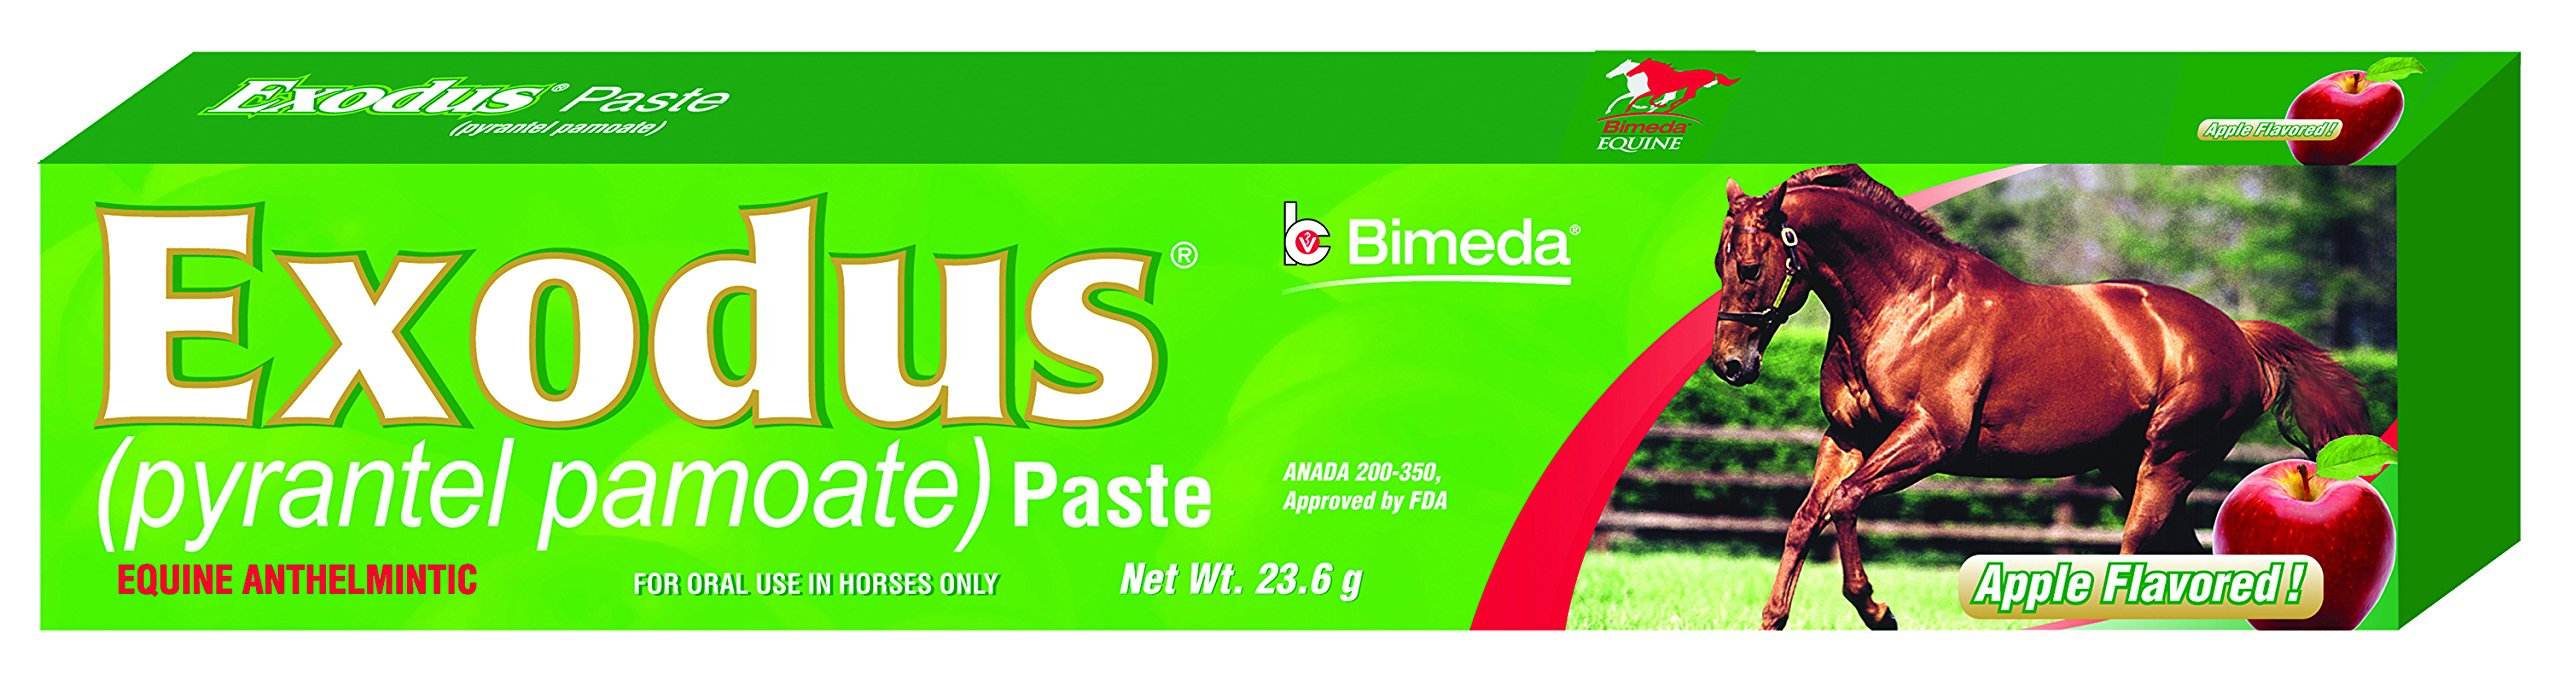 Bimeda EXODUS Equine Deworm Paste for Horses, Pyrantel Pamoate, 23.6gm, Apple Flavor